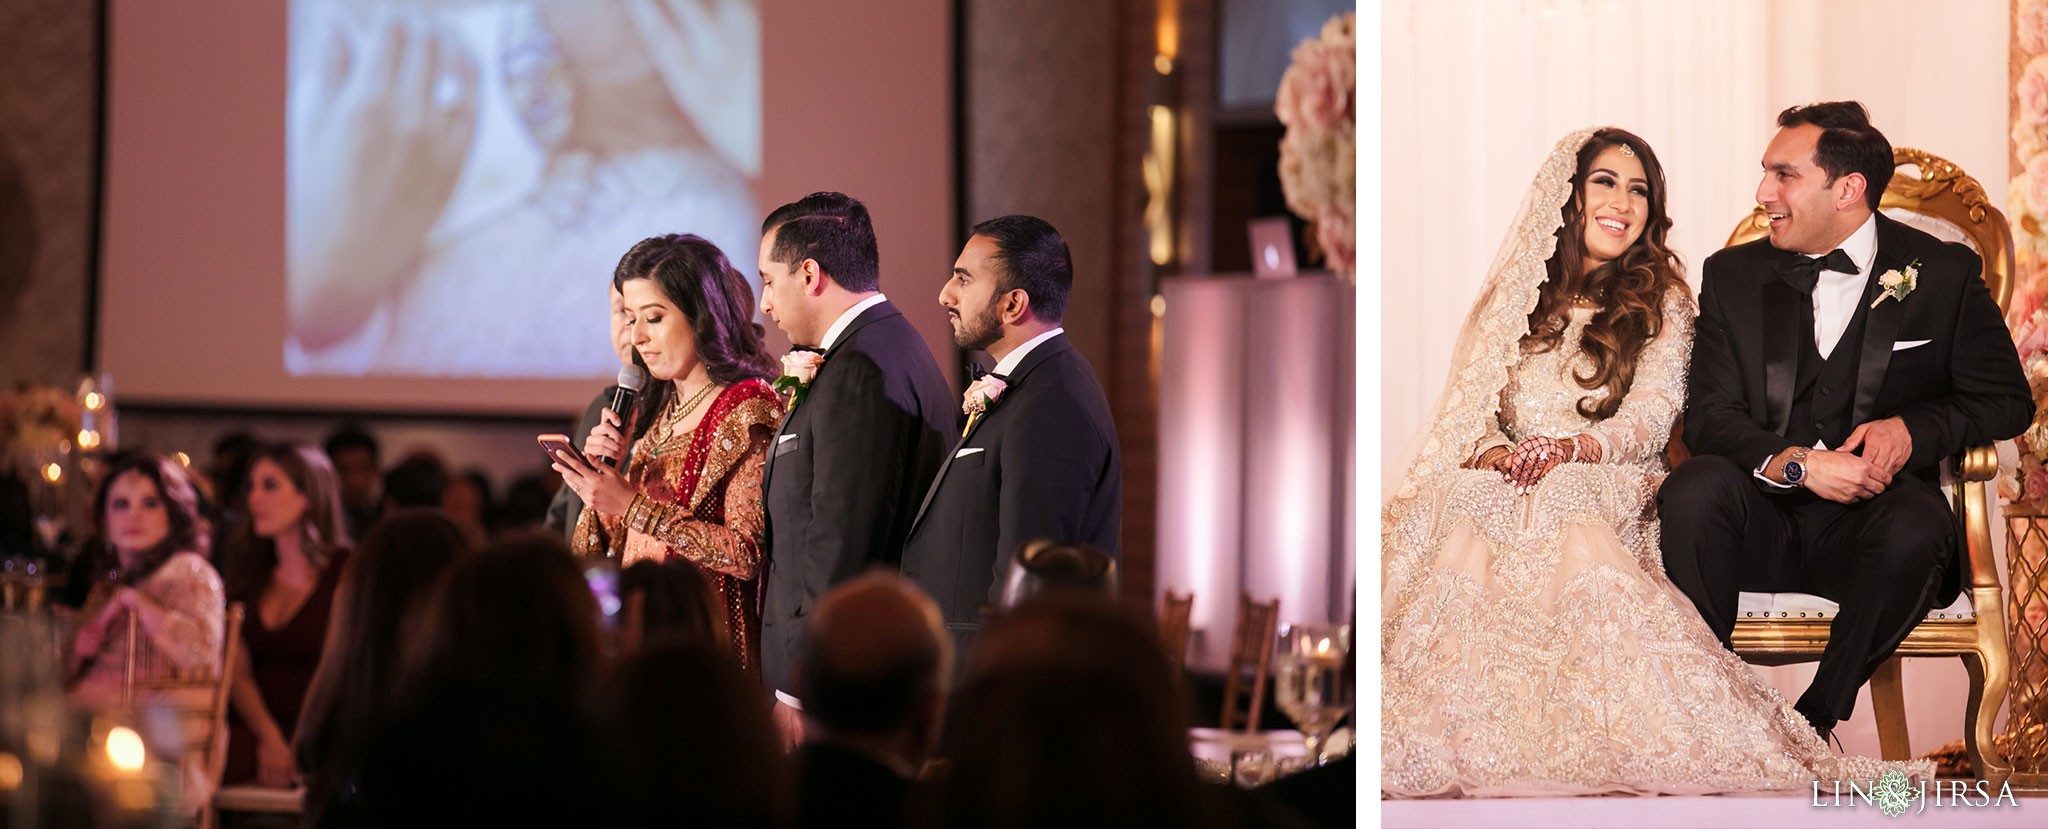 39 pasea hotel spa huntington beach pakistani muslim wedding photography